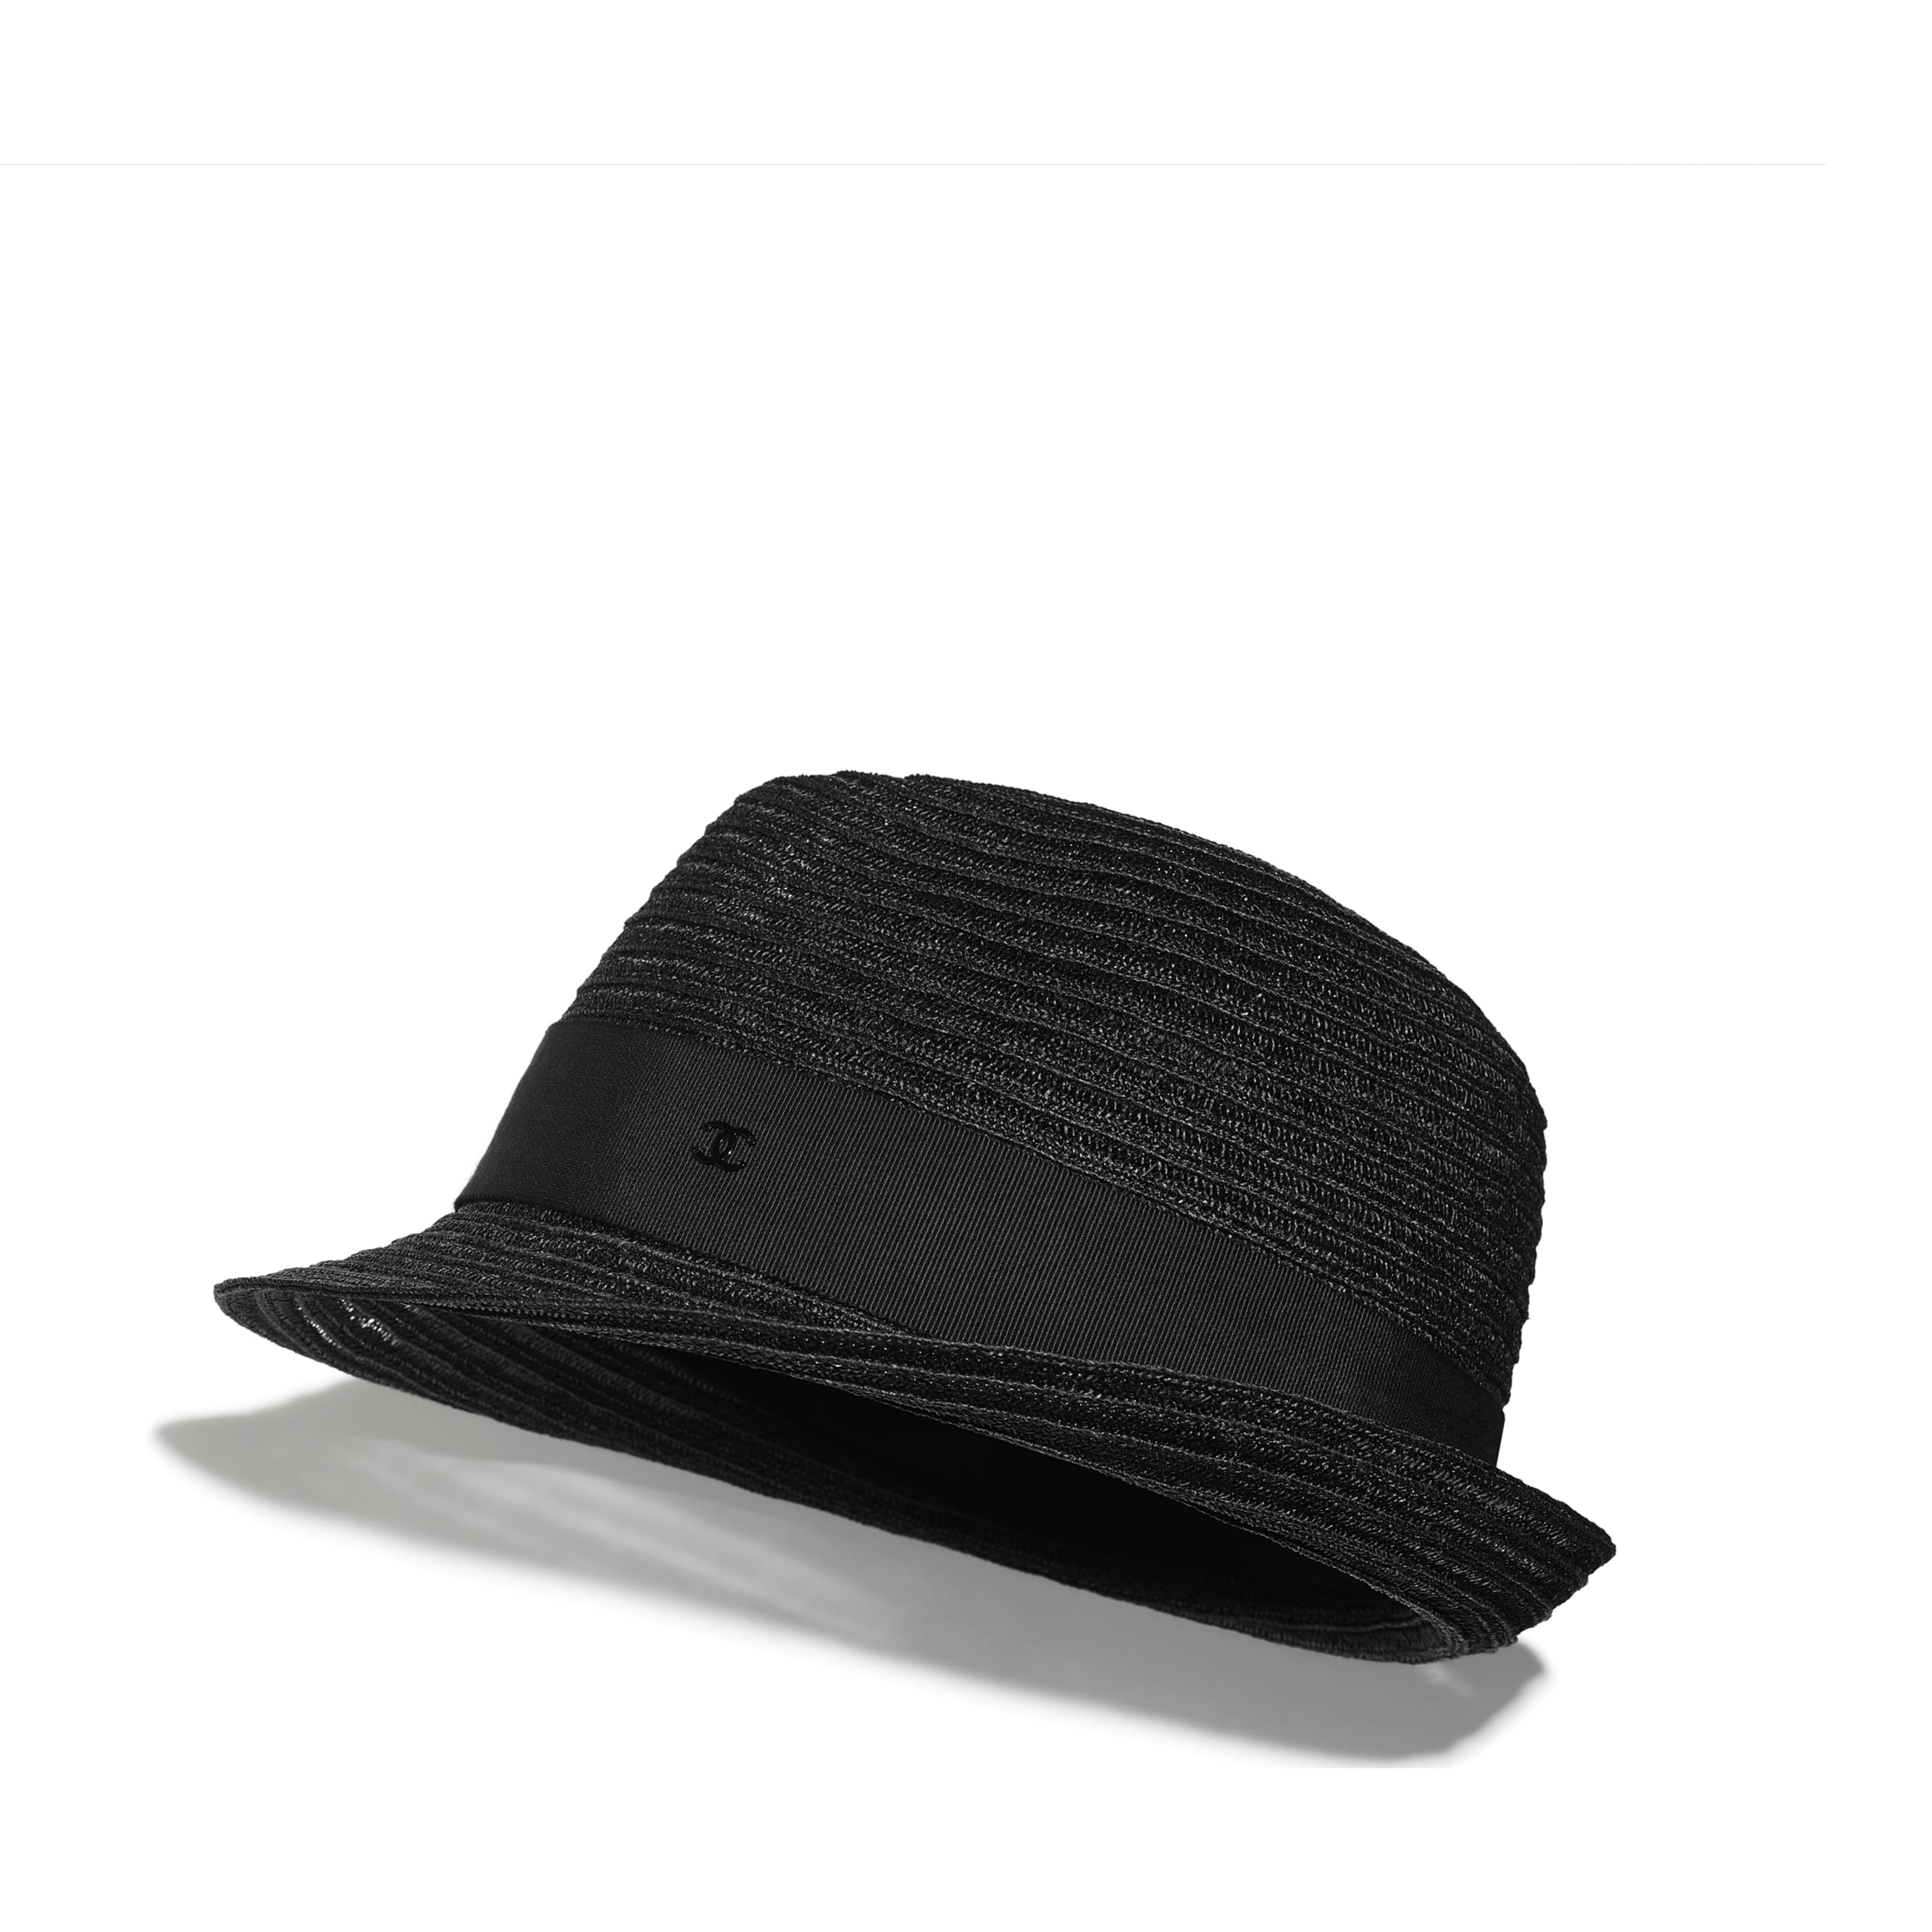 Hat - Black - Straw & Grosgrain - CHANEL - Default view - see standard sized version